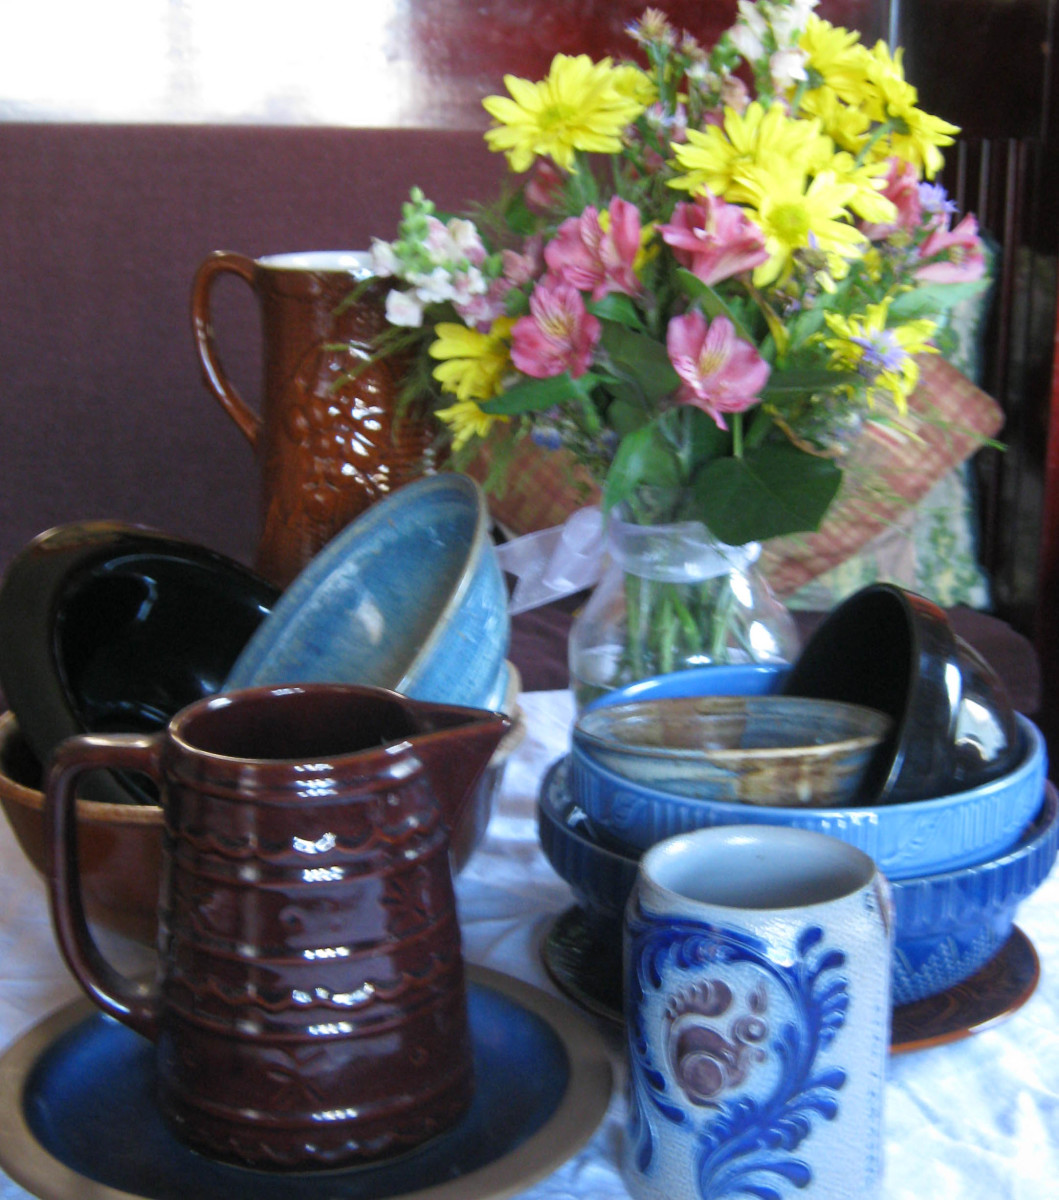 Shabby chic with blue and brown dishes